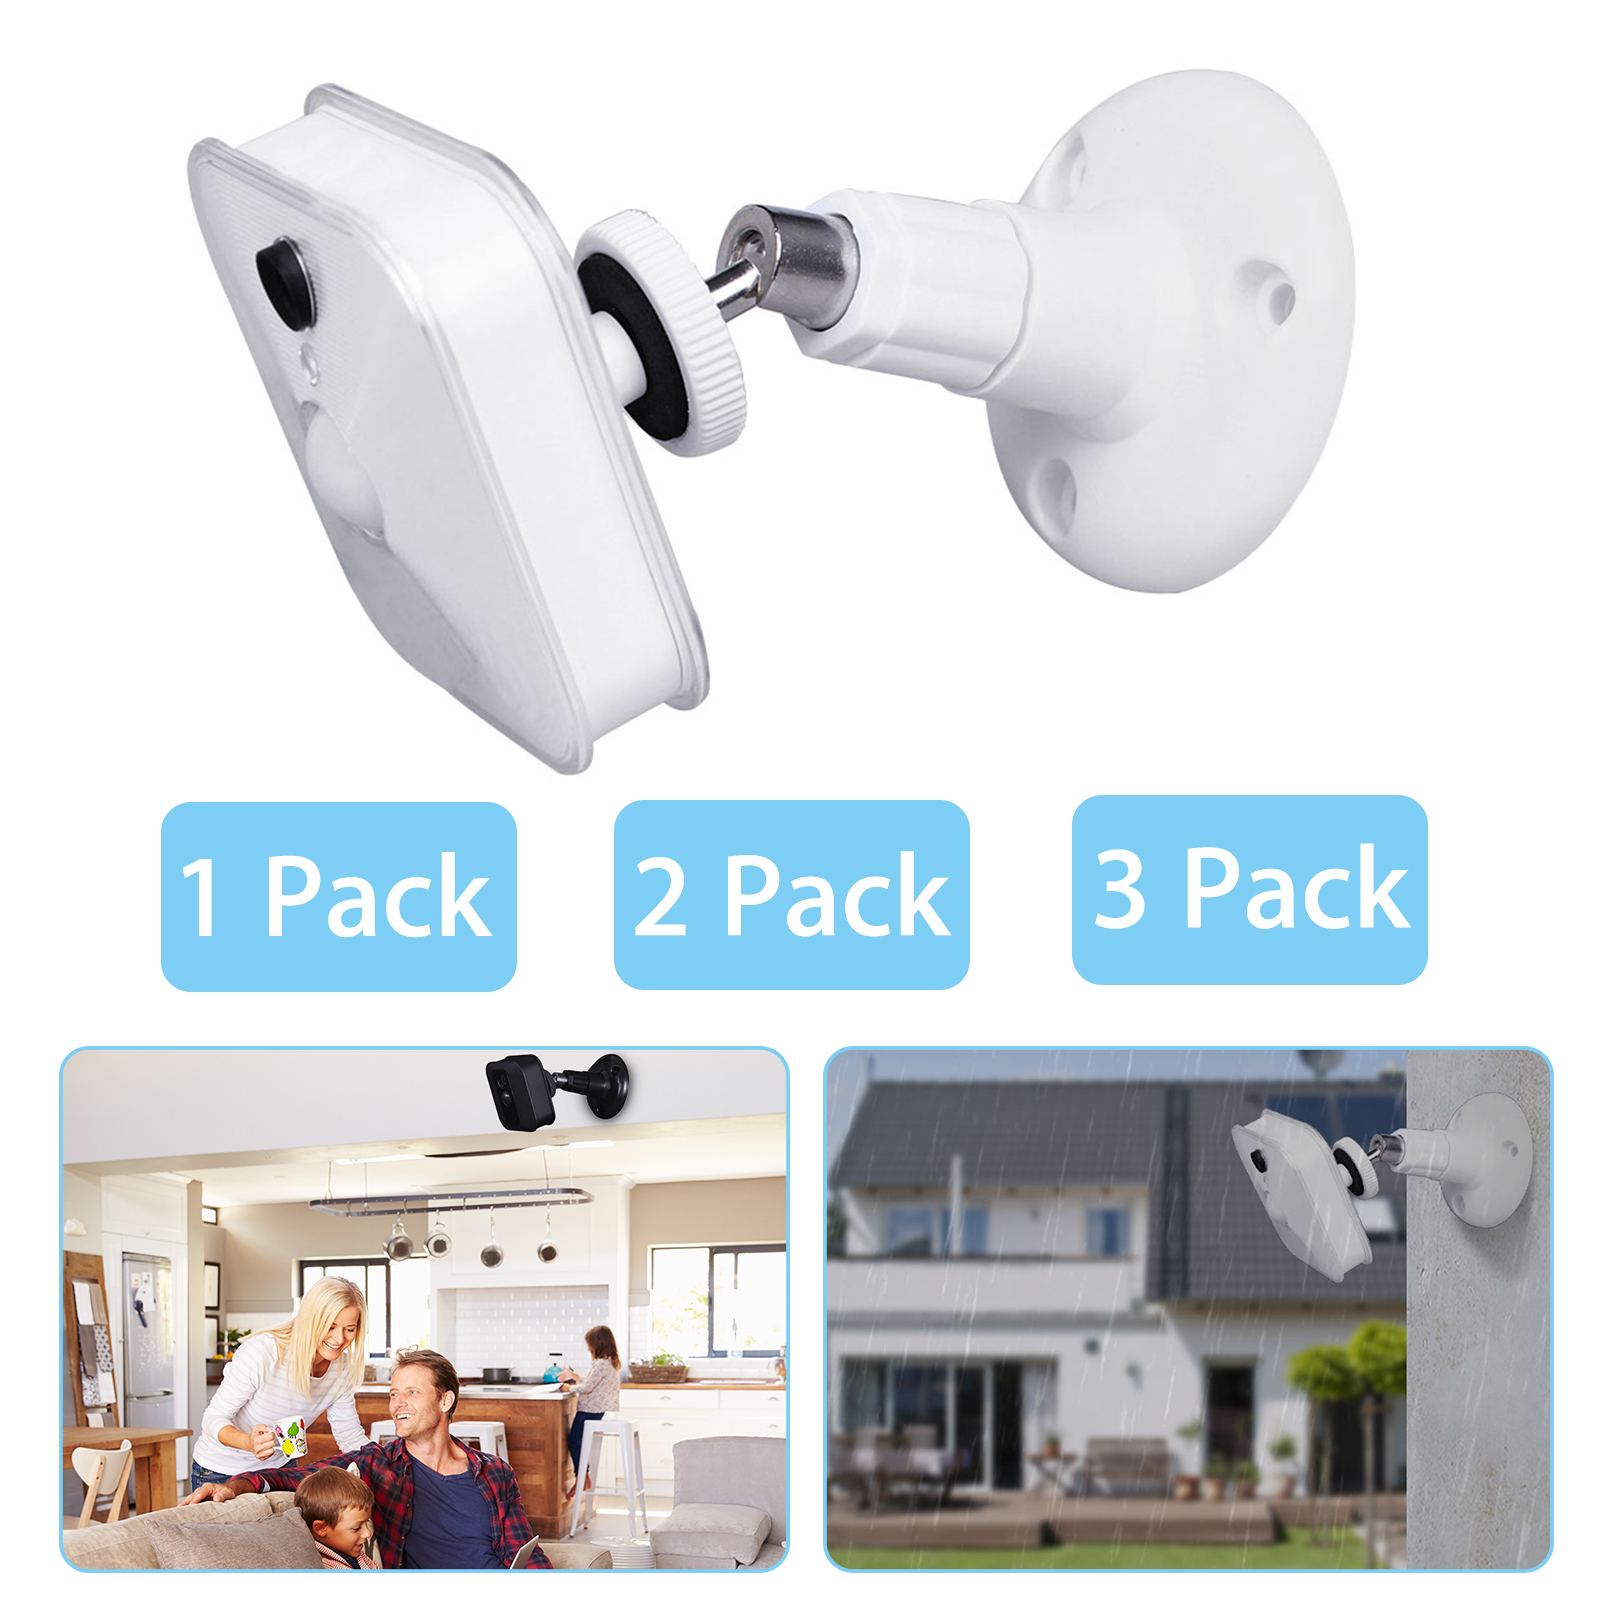 Adjustable-Security-Wall-Holder-Mount-Bracket-Indoor-Outdoor-for-Blink-XT-Camera